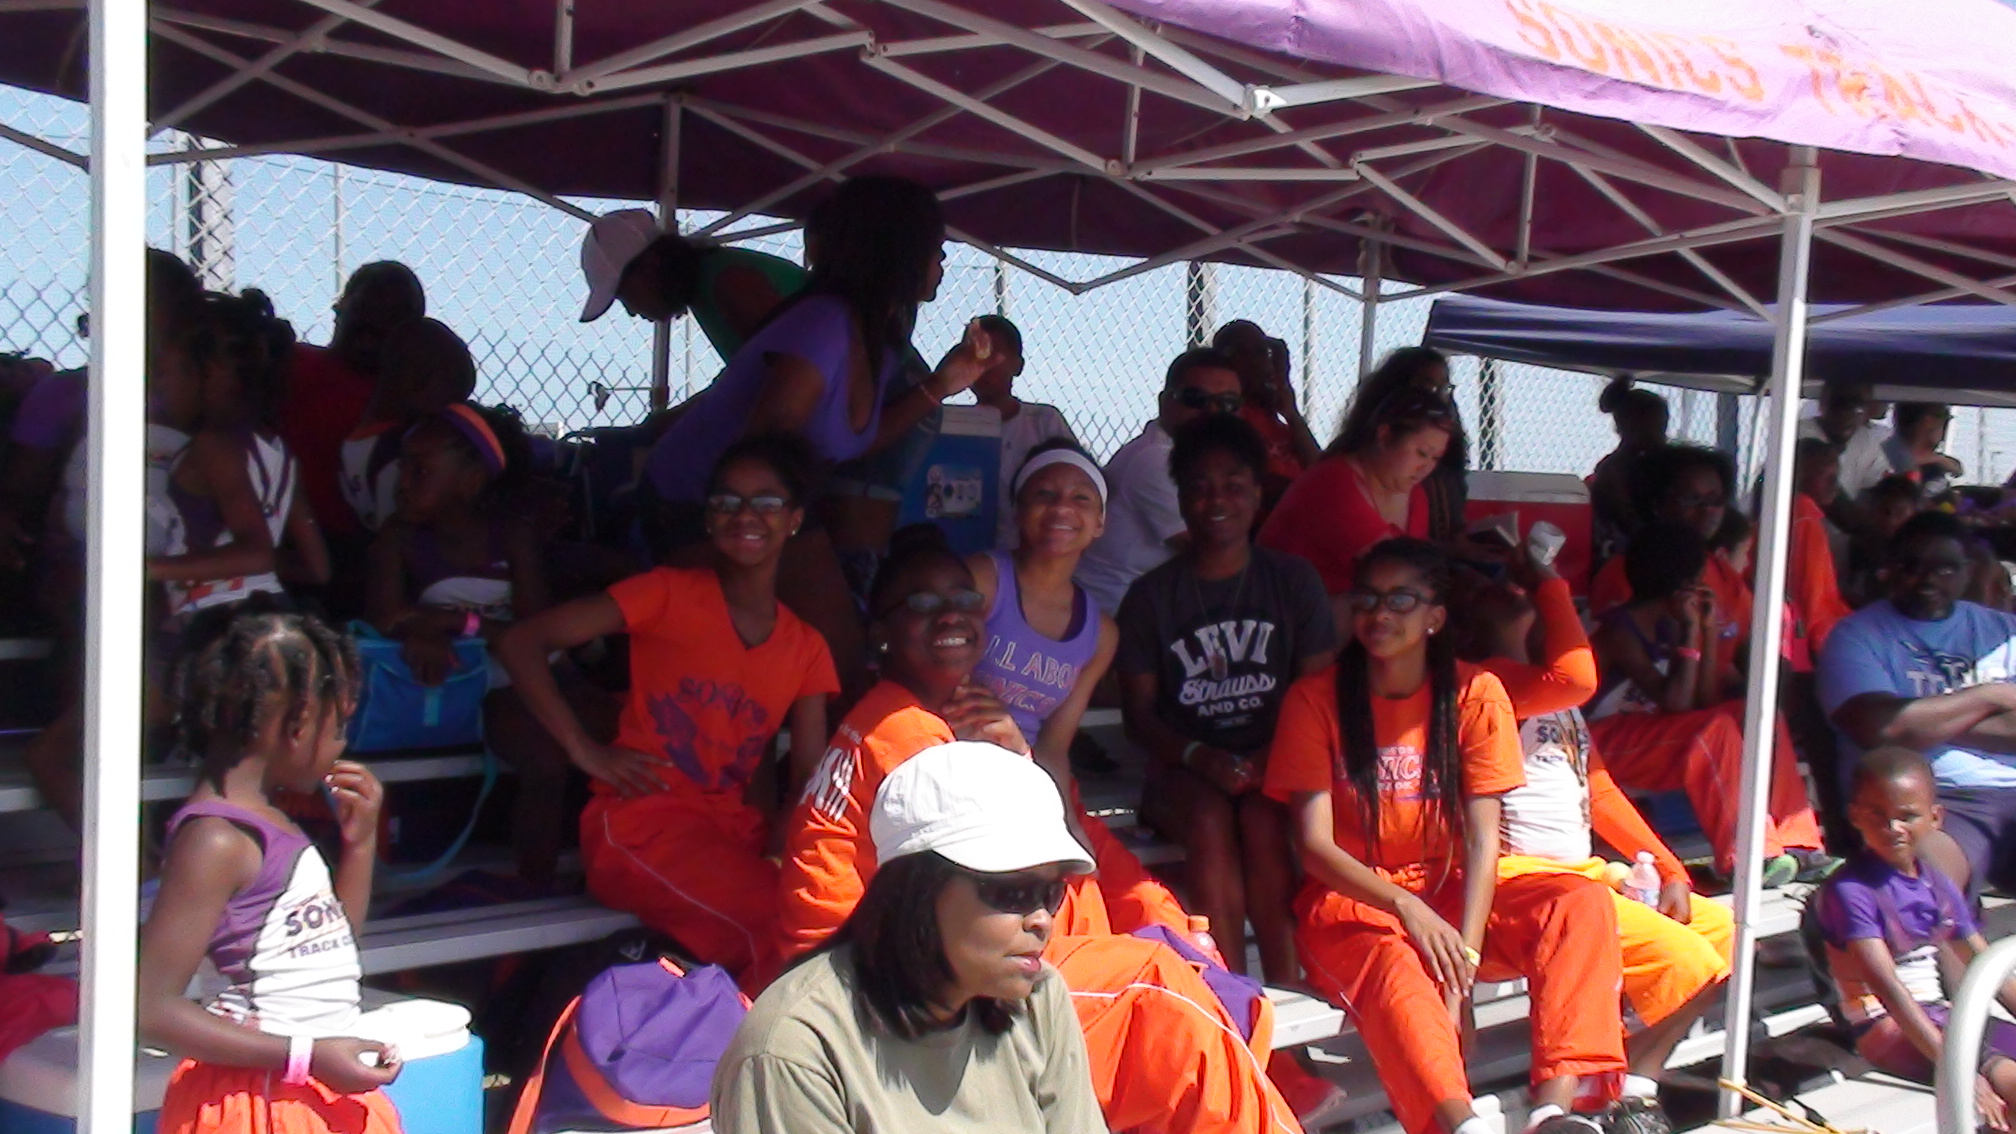 Sonics athletes staying cool under the tent